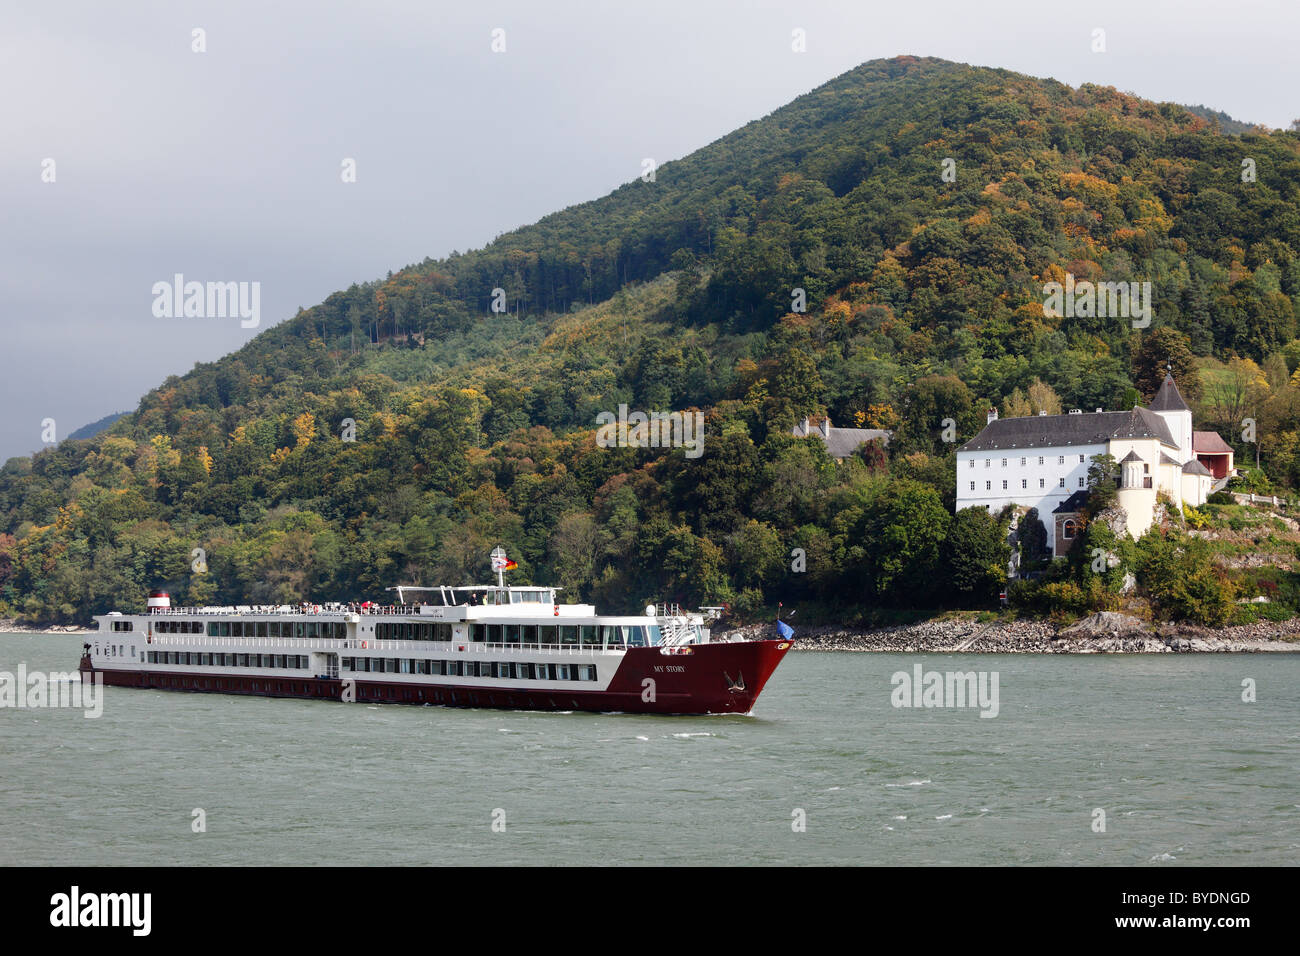 River cruise ship, My Story, in front of Servite Monastery of Schoenbuehel on the Danube, Wachau, Mostviertel, Most - Stock Image